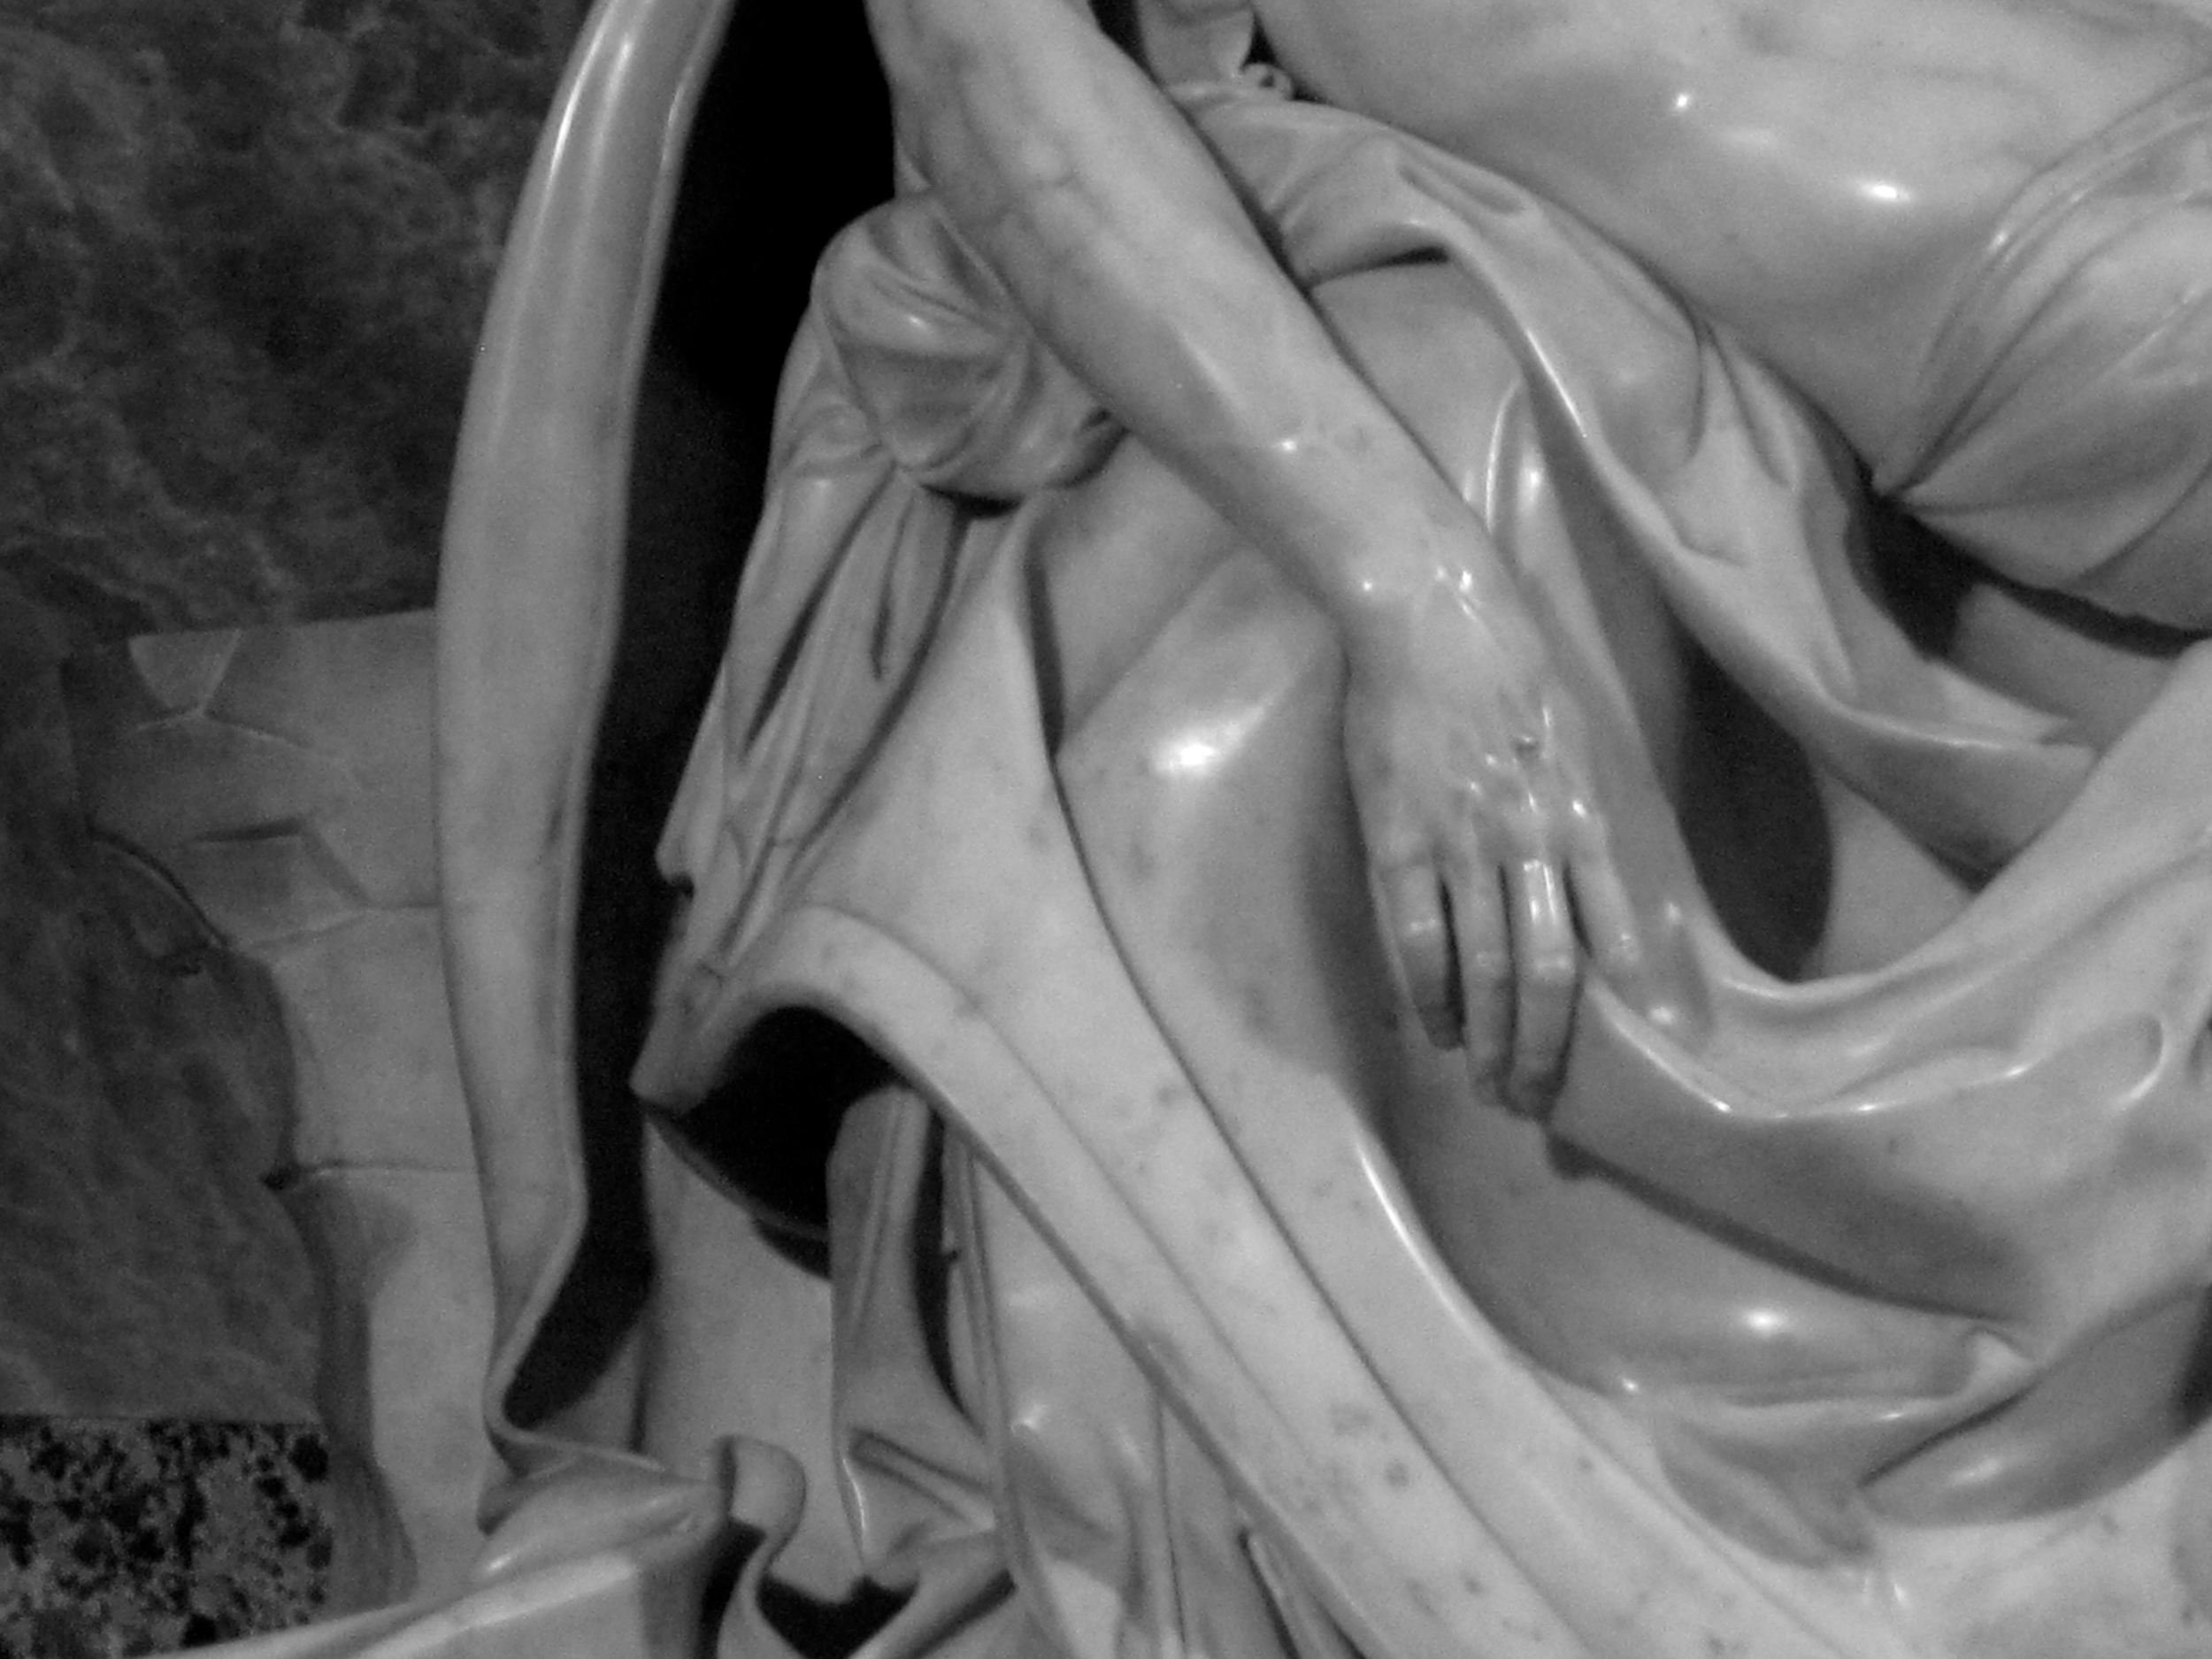 Hand of the Christ on Michelangelo's Pietà